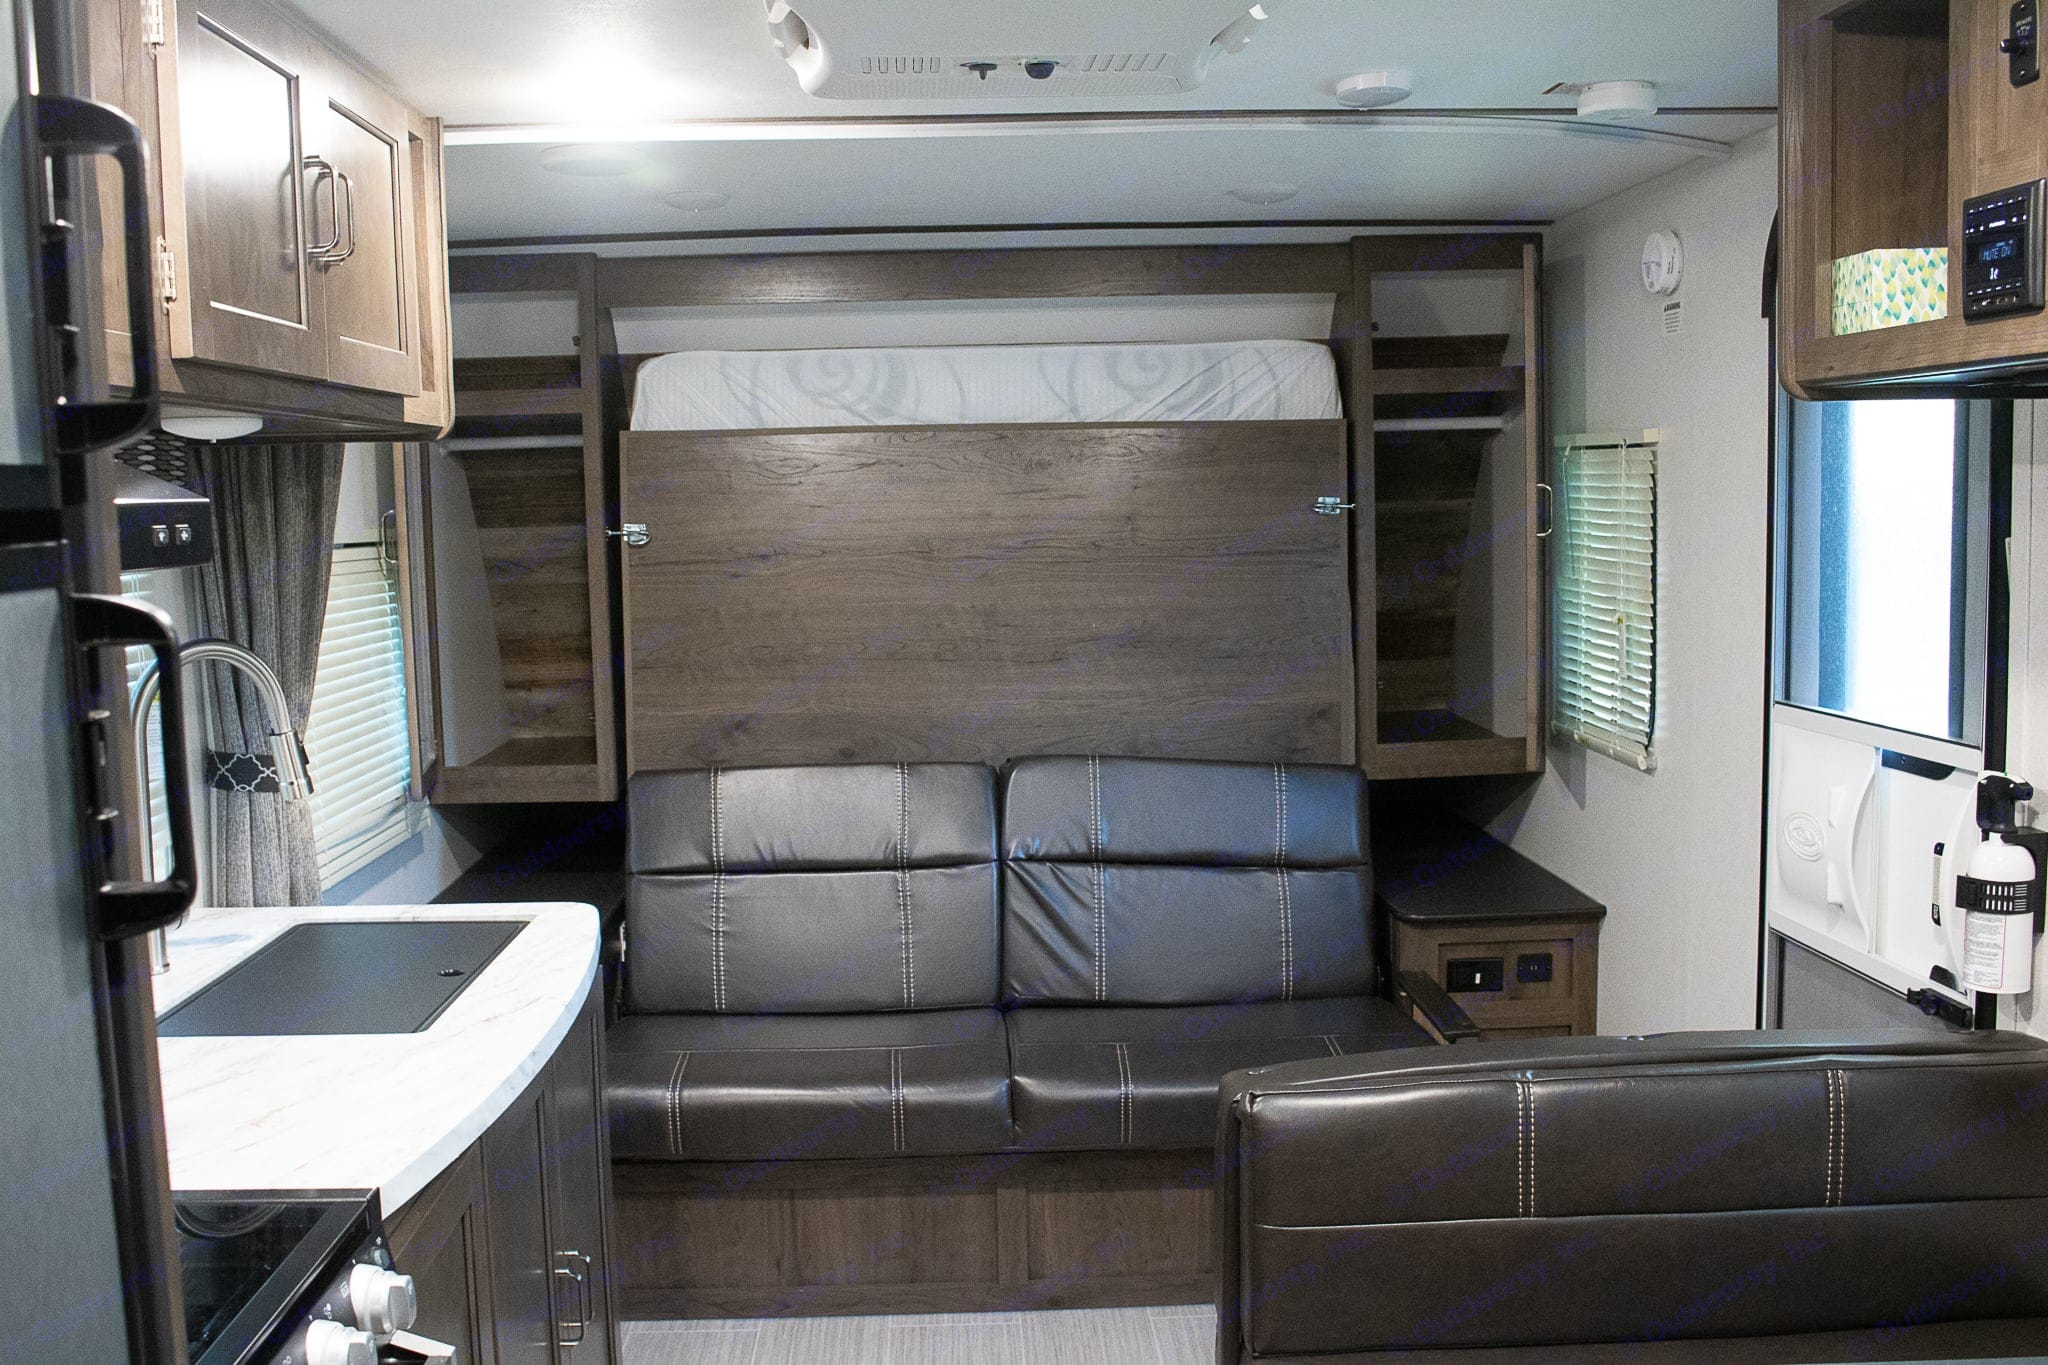 Bed folds up and turns into a good sized leather couch. USB power outlets on both sides. Deep cabinets with hanging bar for clothes or other storage. . Keystone Passport 2019